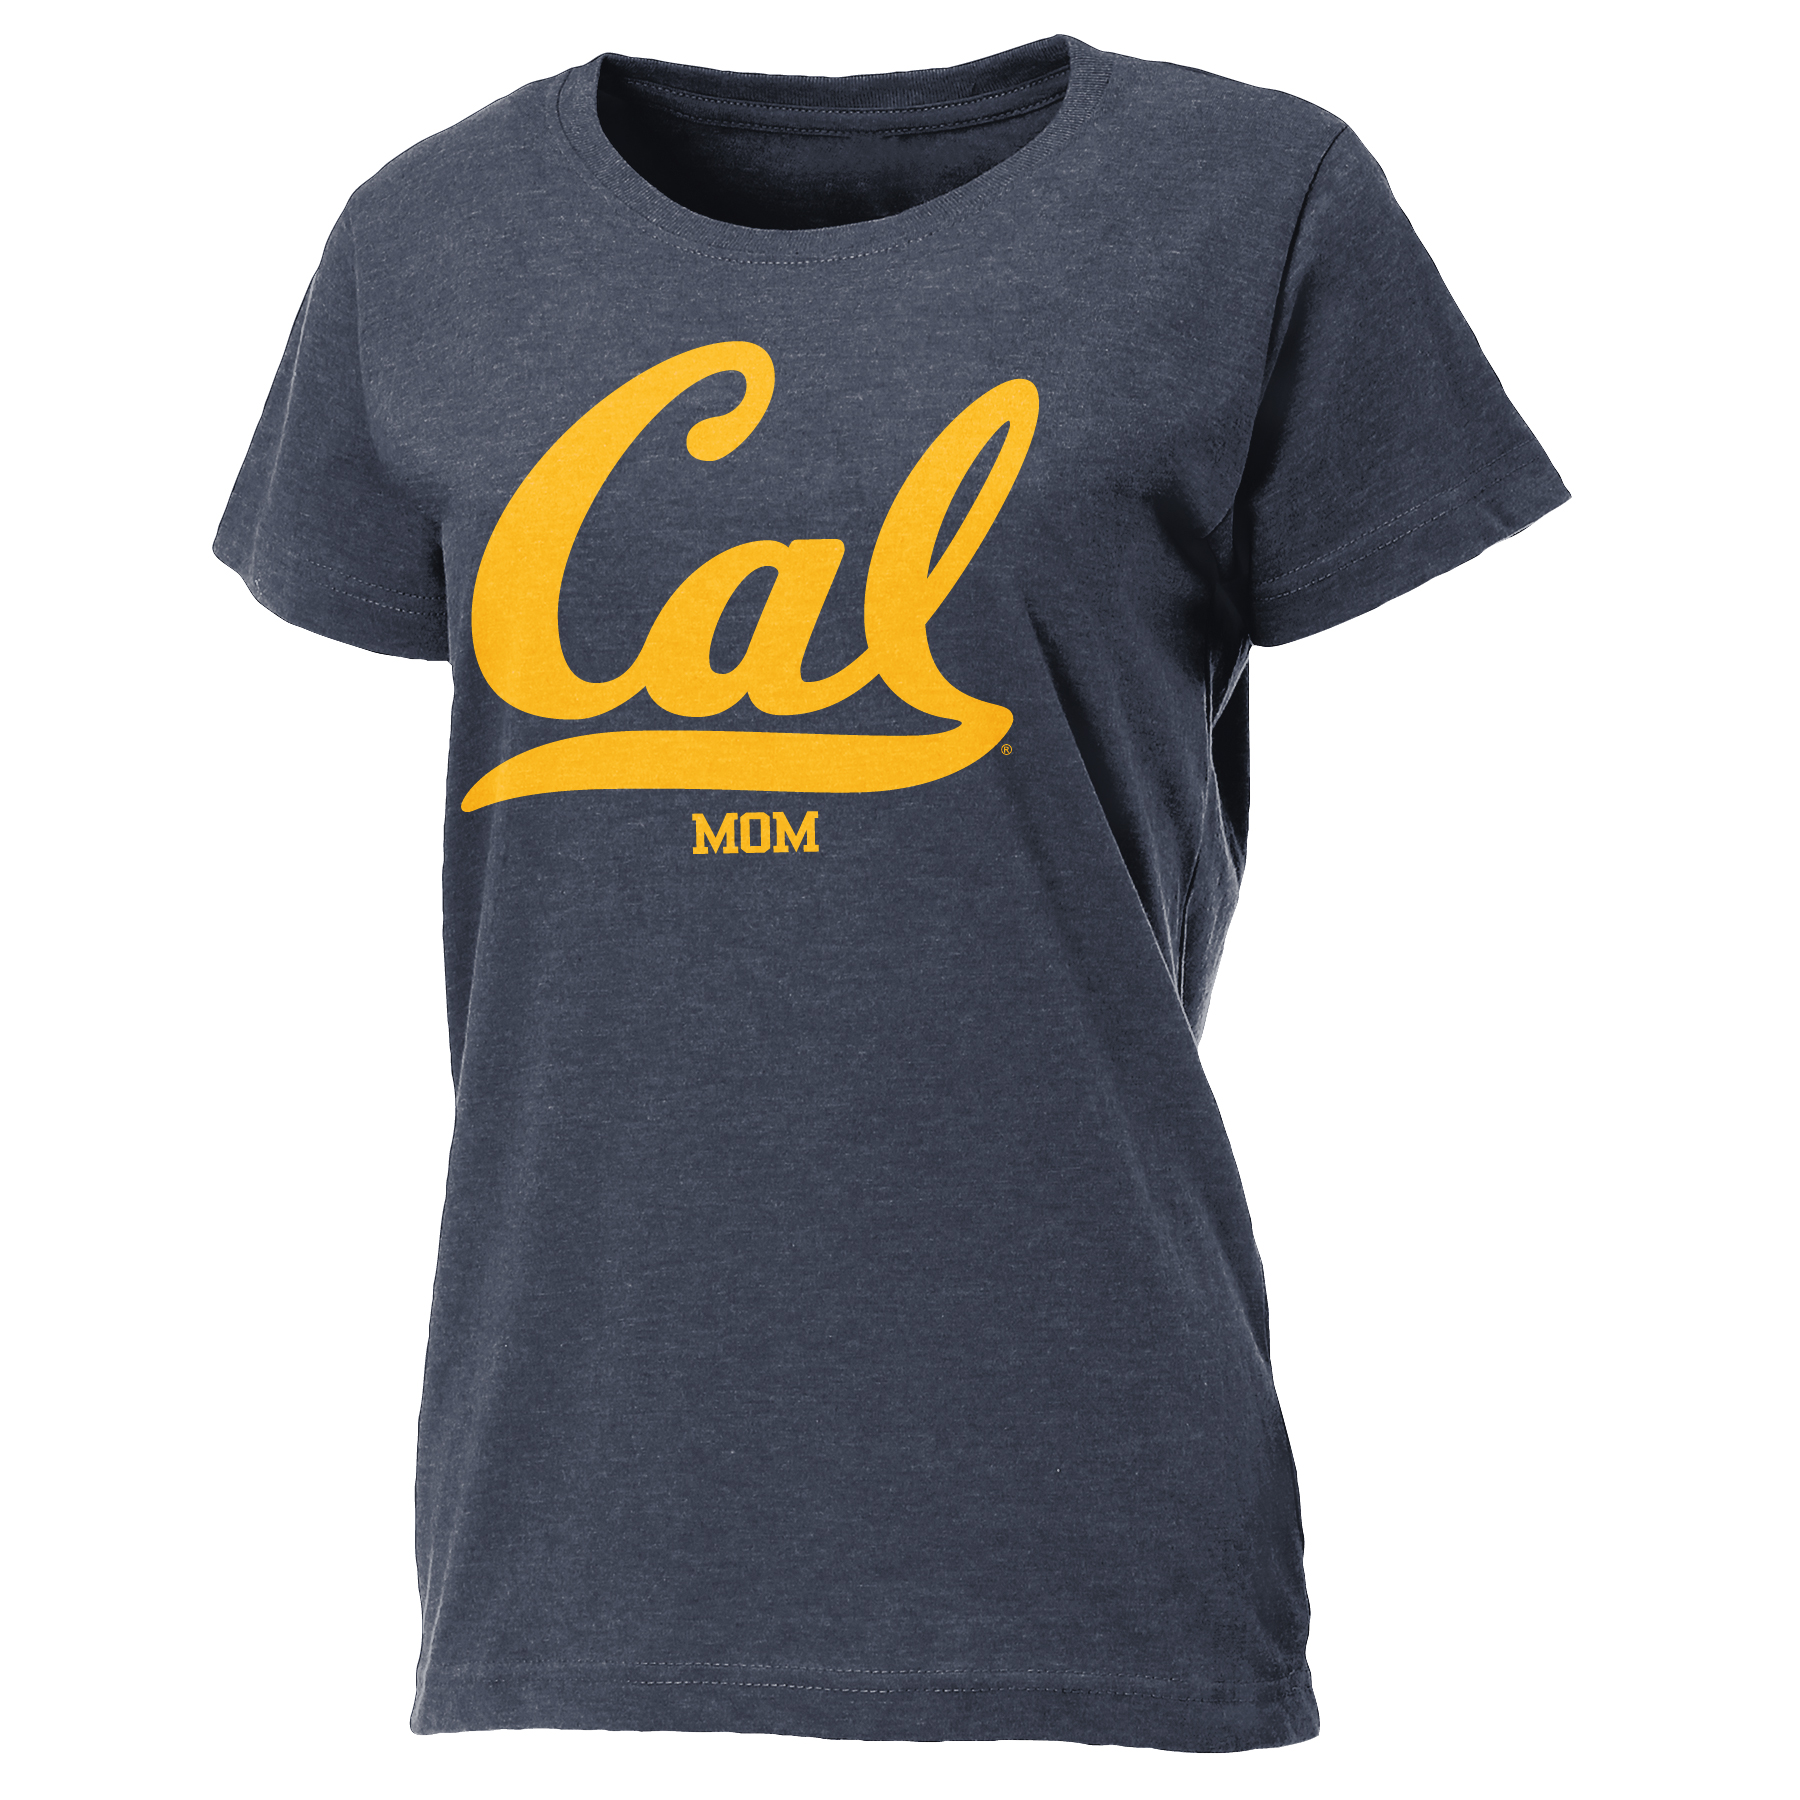 "University of California Berkeley Women's Relaxed Fit Tee ""Mom"""